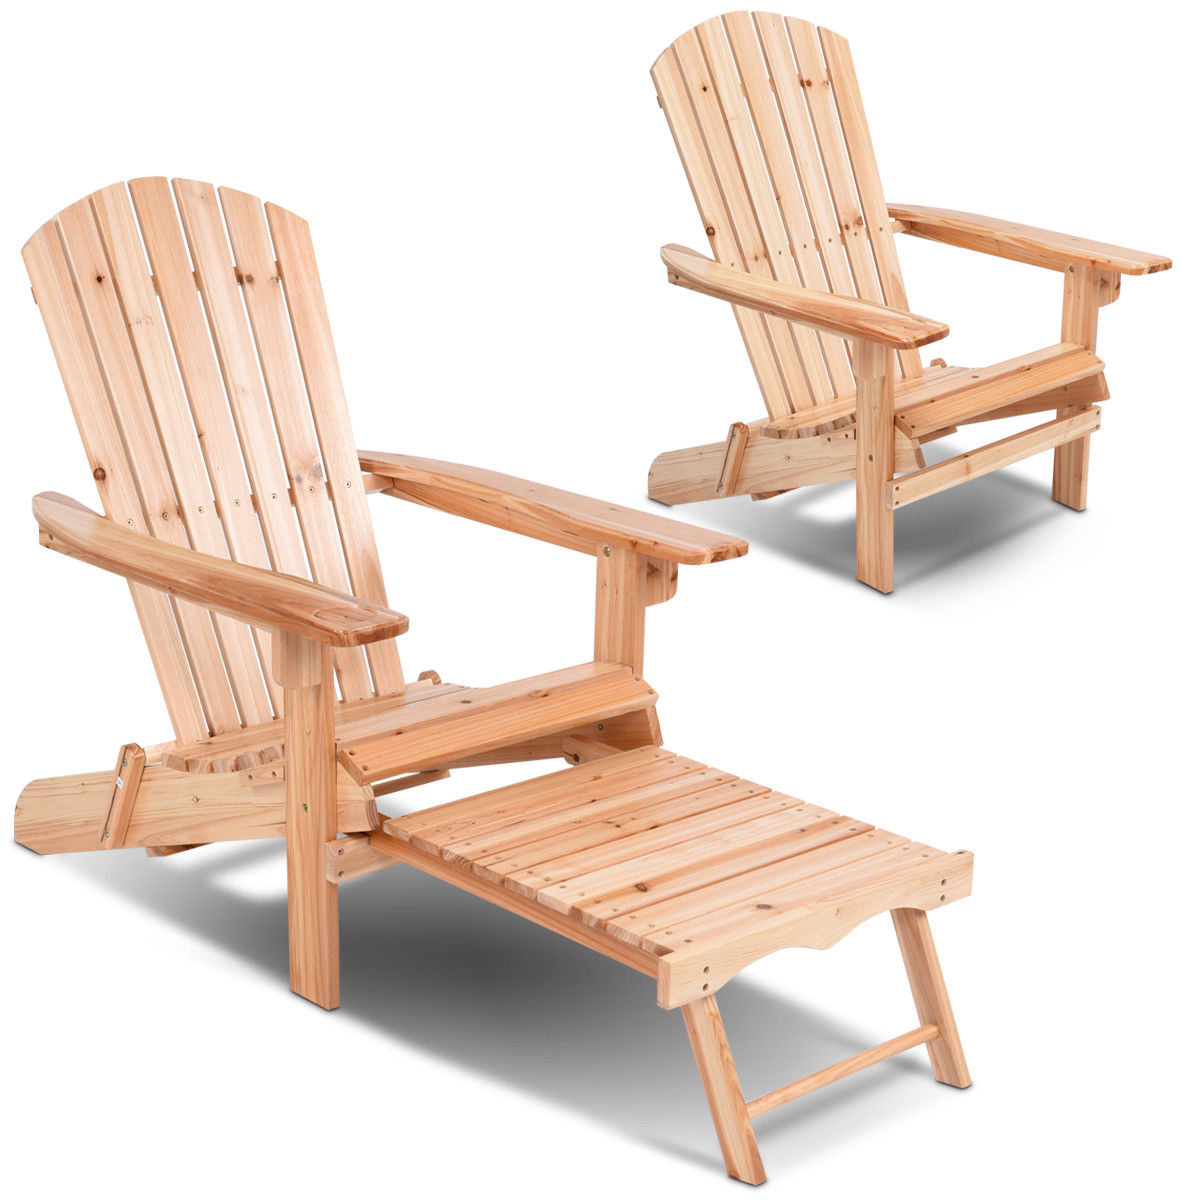 Gymax Wood Adirondack Chair w/Footrest Stool Ottoman Foldable Patio Deck Outdoor